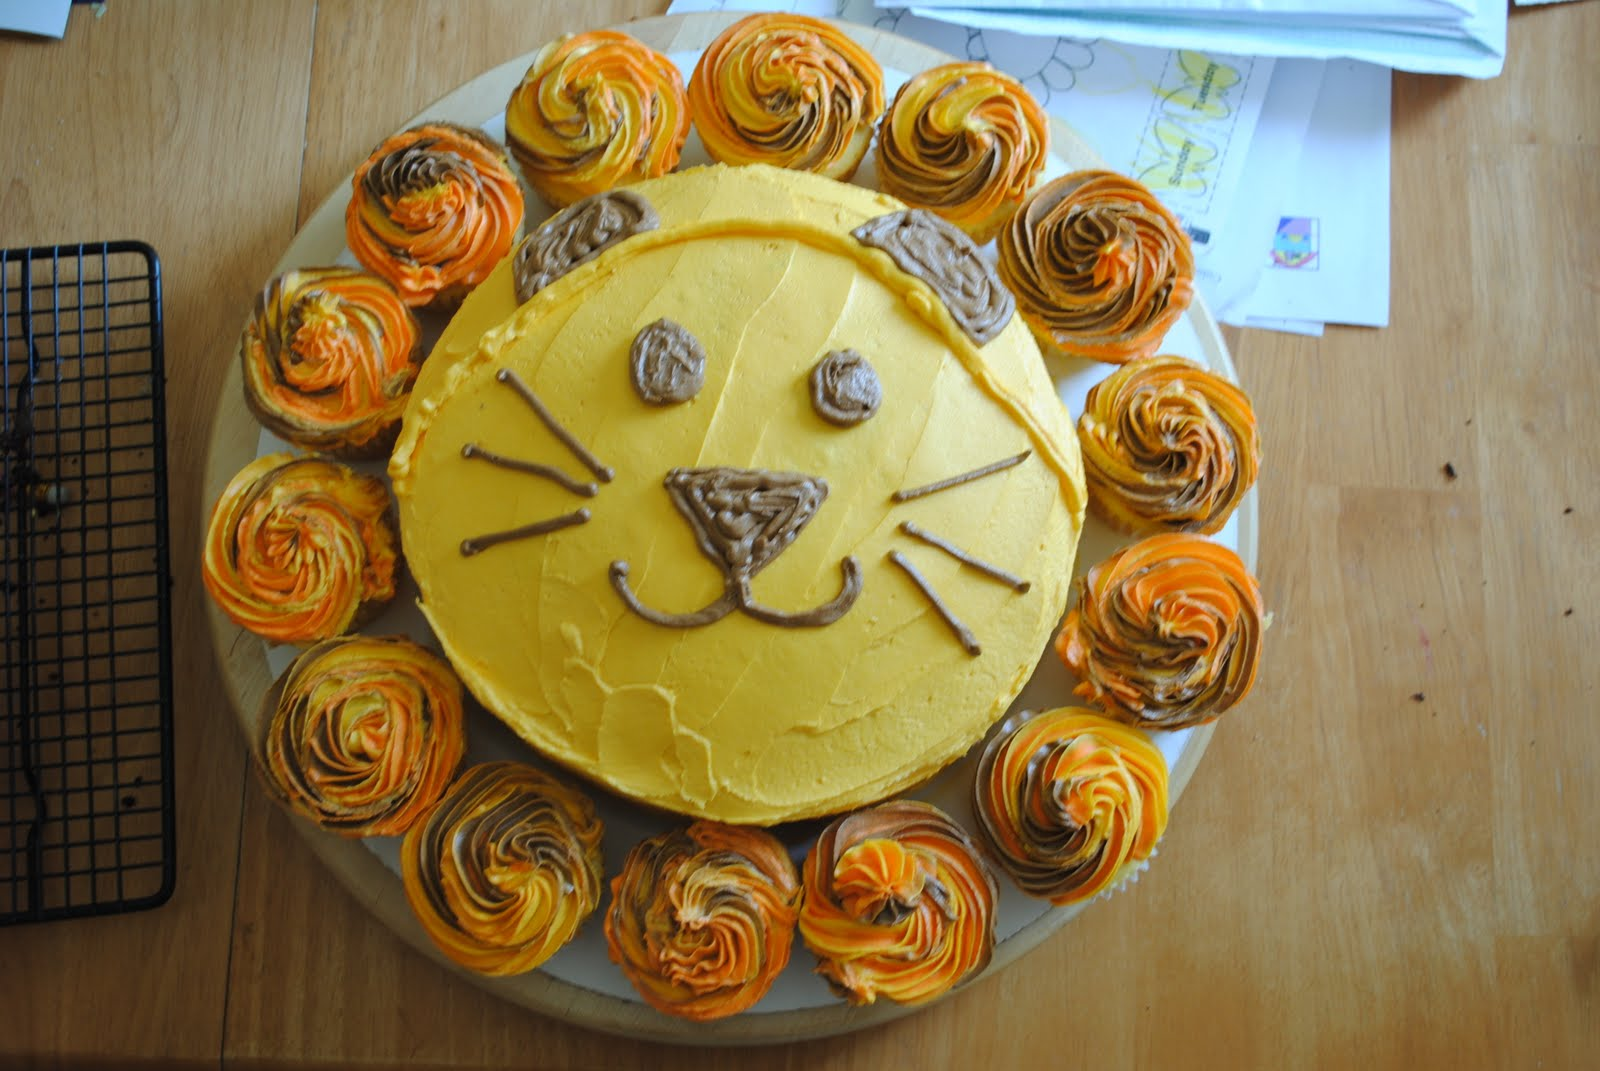 From My Kitchen to Yours: Daniels Lion Cake